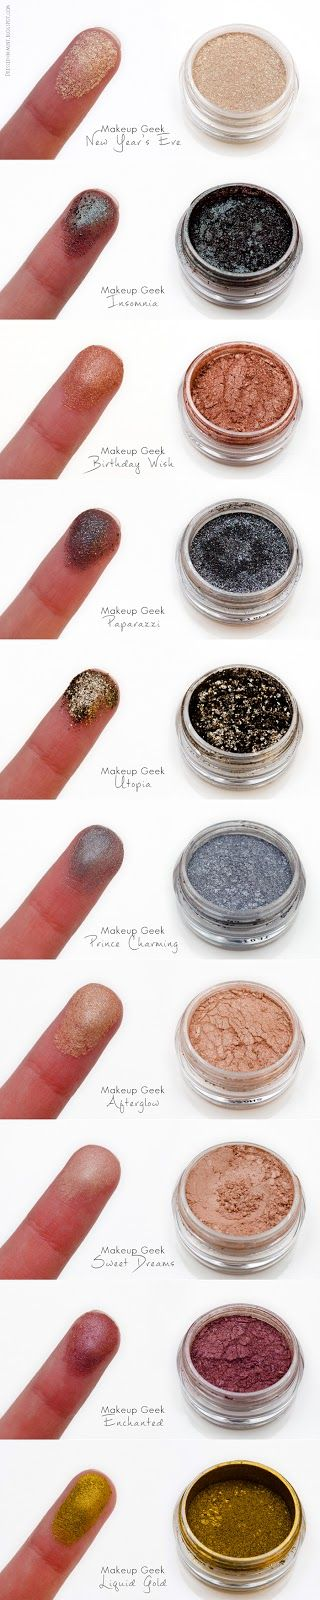 Makeup Geek Pigment Swatches & Review by Dressed In Mint There's a few of these that I want!